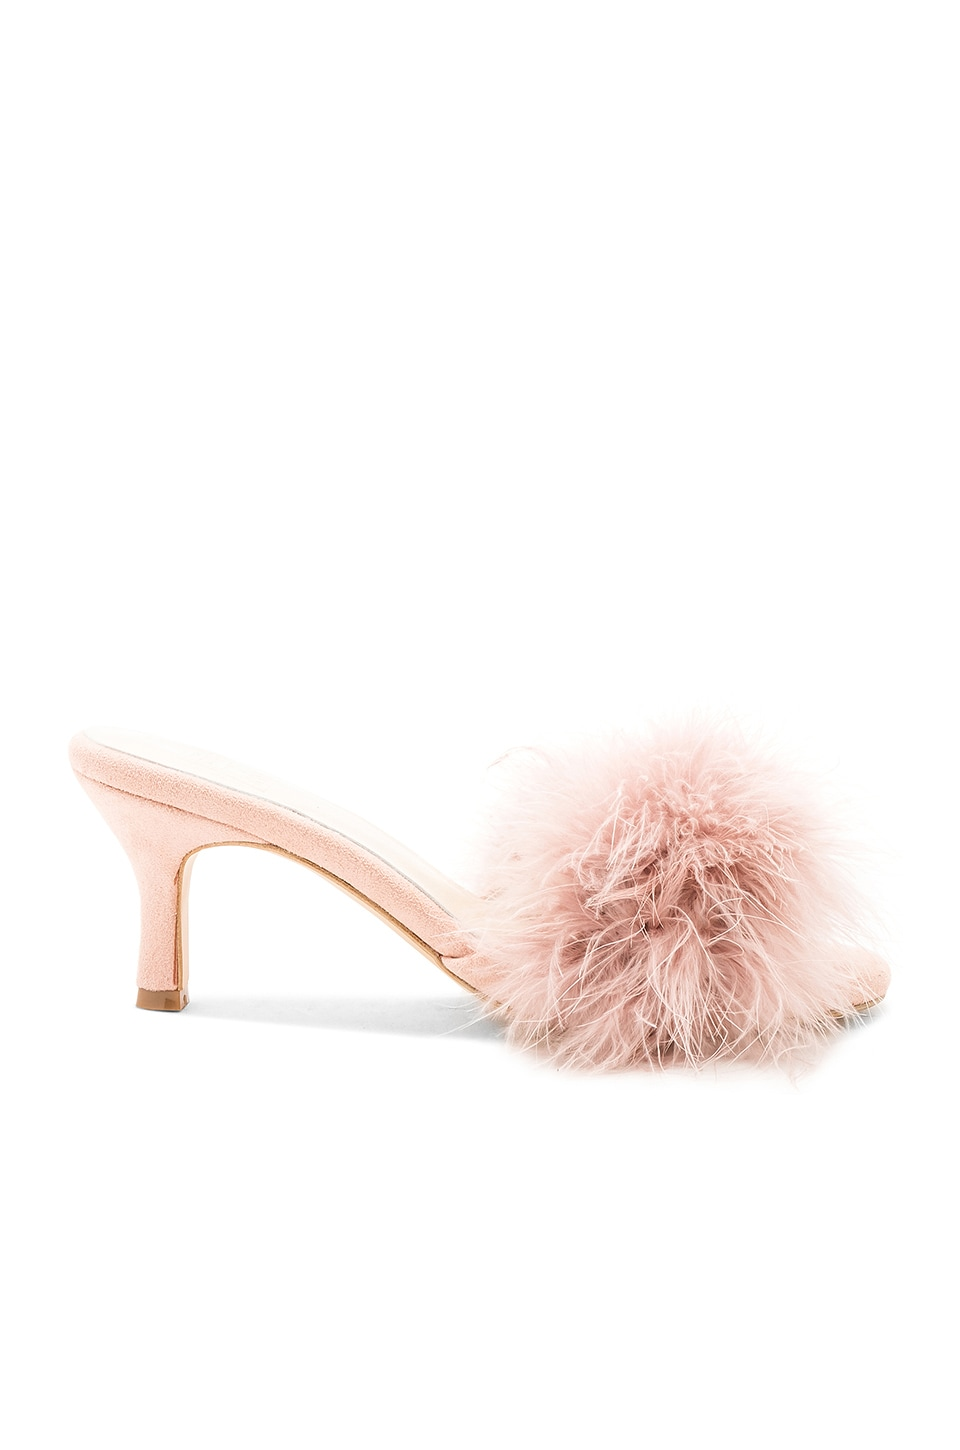 RAYE x STONE_COLD_FOX Crawford Heel in Blush